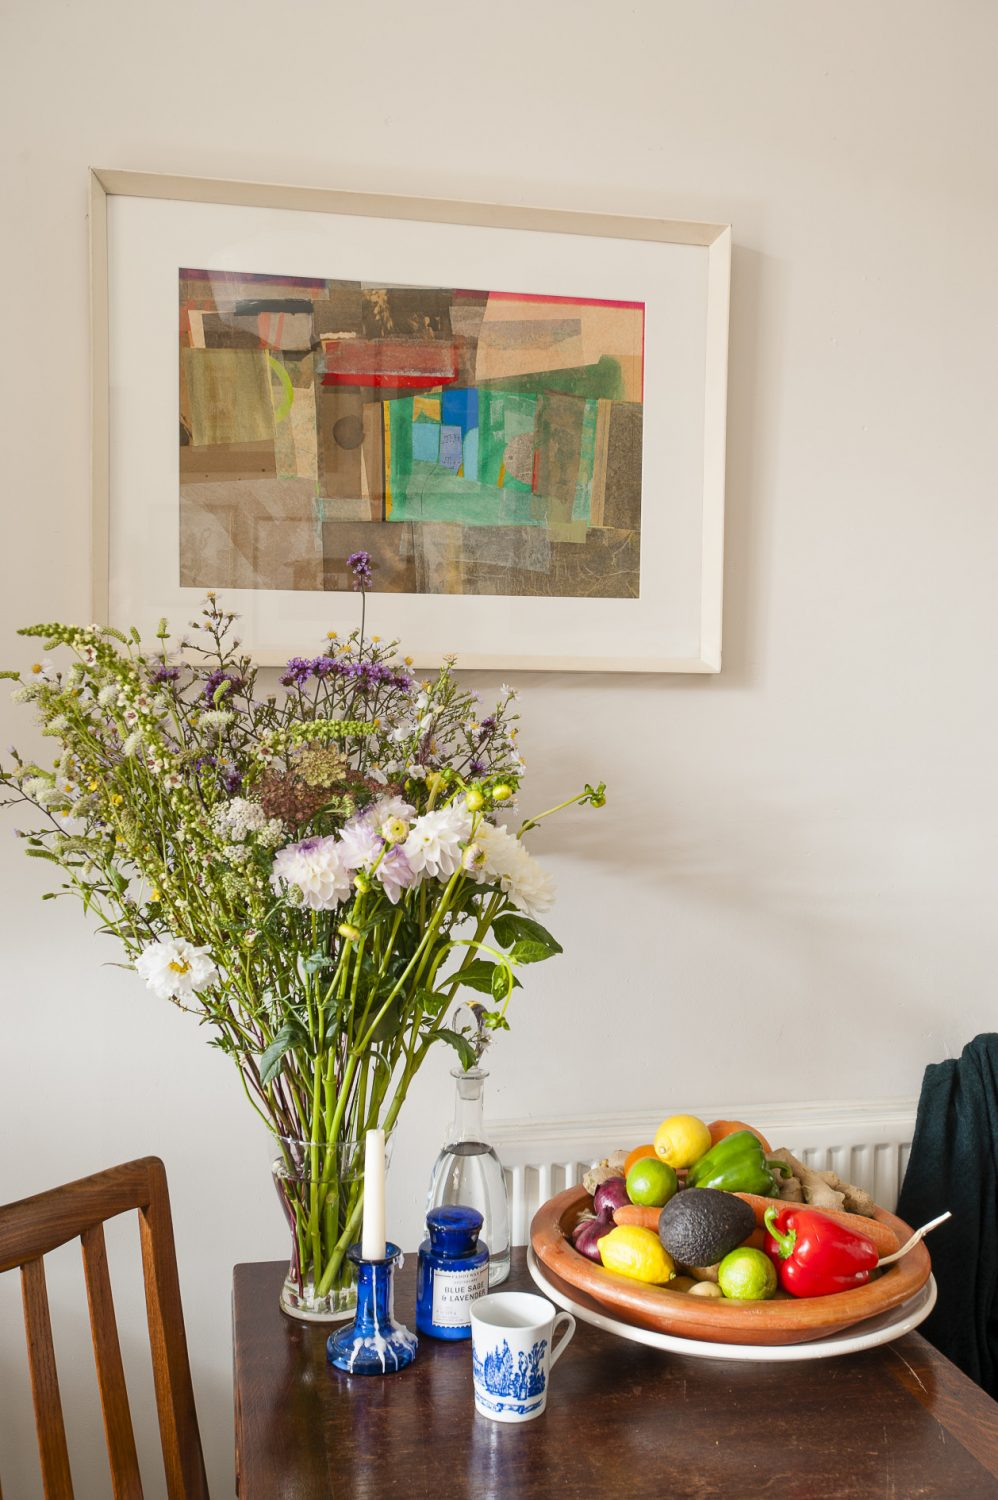 """""""I never take 'stuff' with me when I move, but I always take my artworks,"""" says Christine. I'm not sentimental about 'things' but I love art."""""""